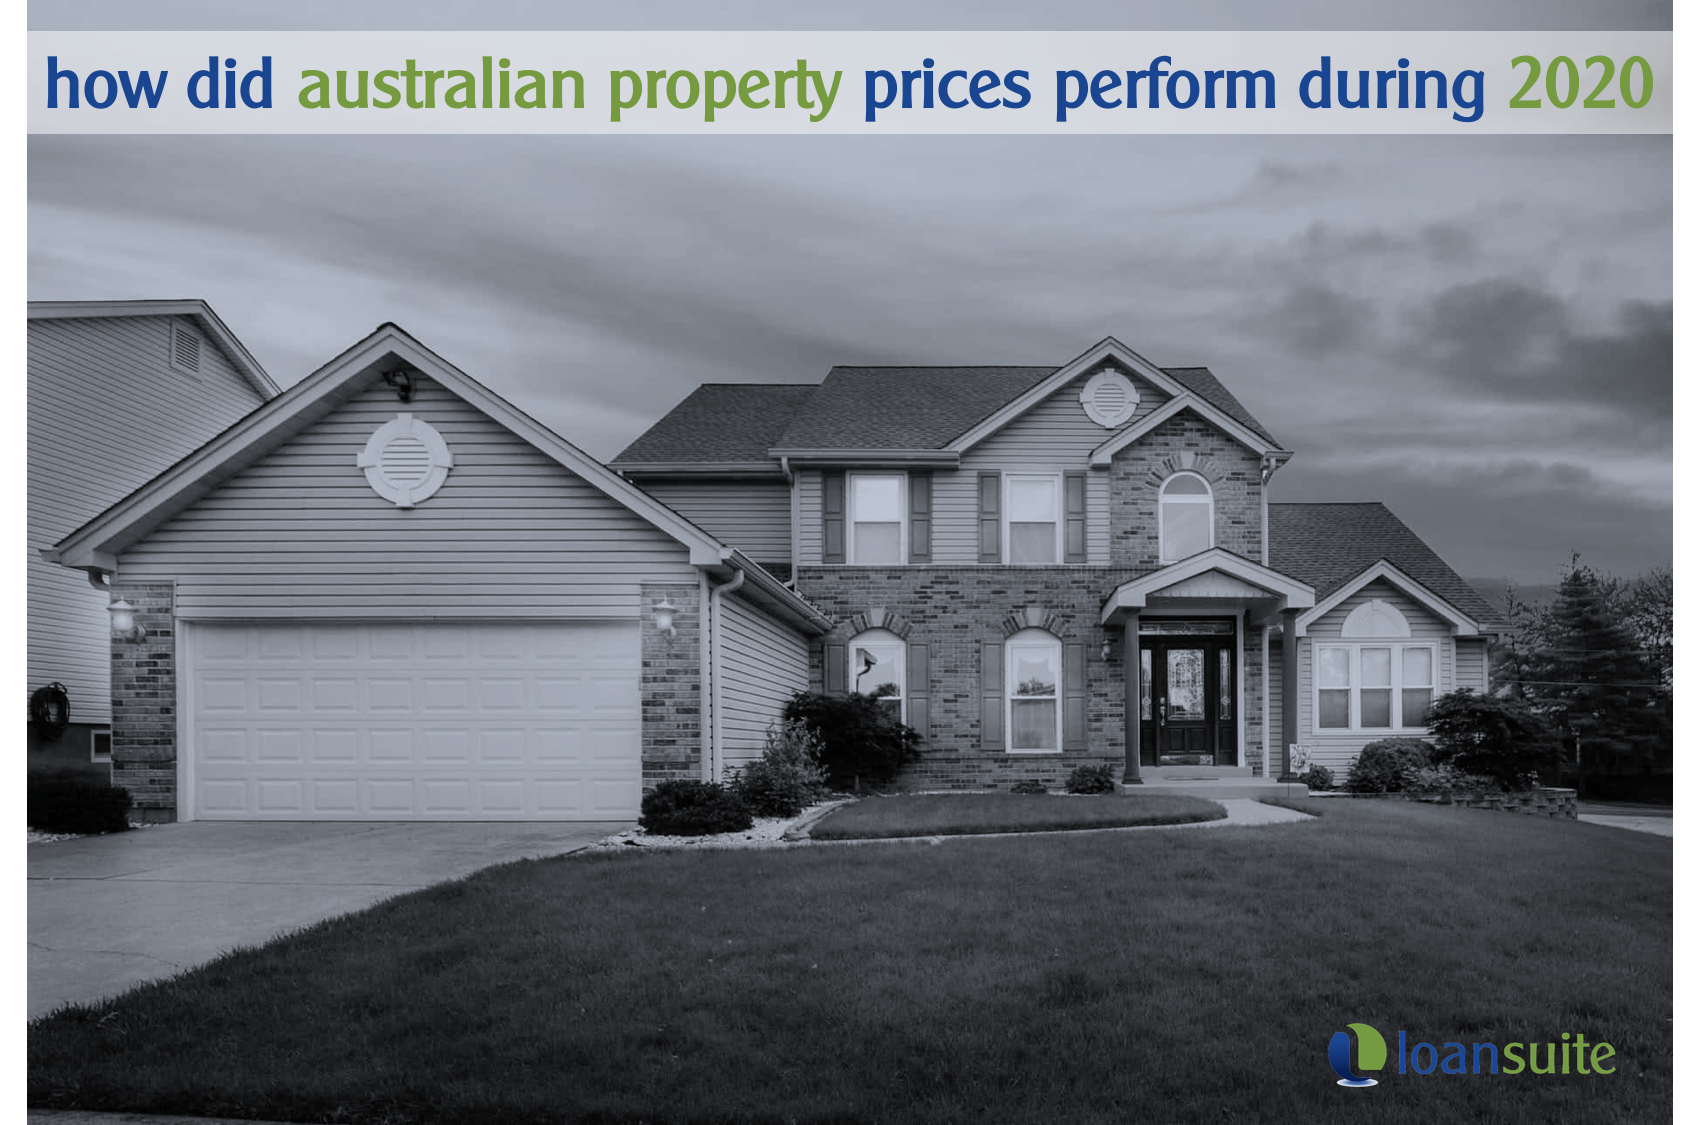 Australian Property Growth During Covid-19 - Loansuite - Mortgage Brokers